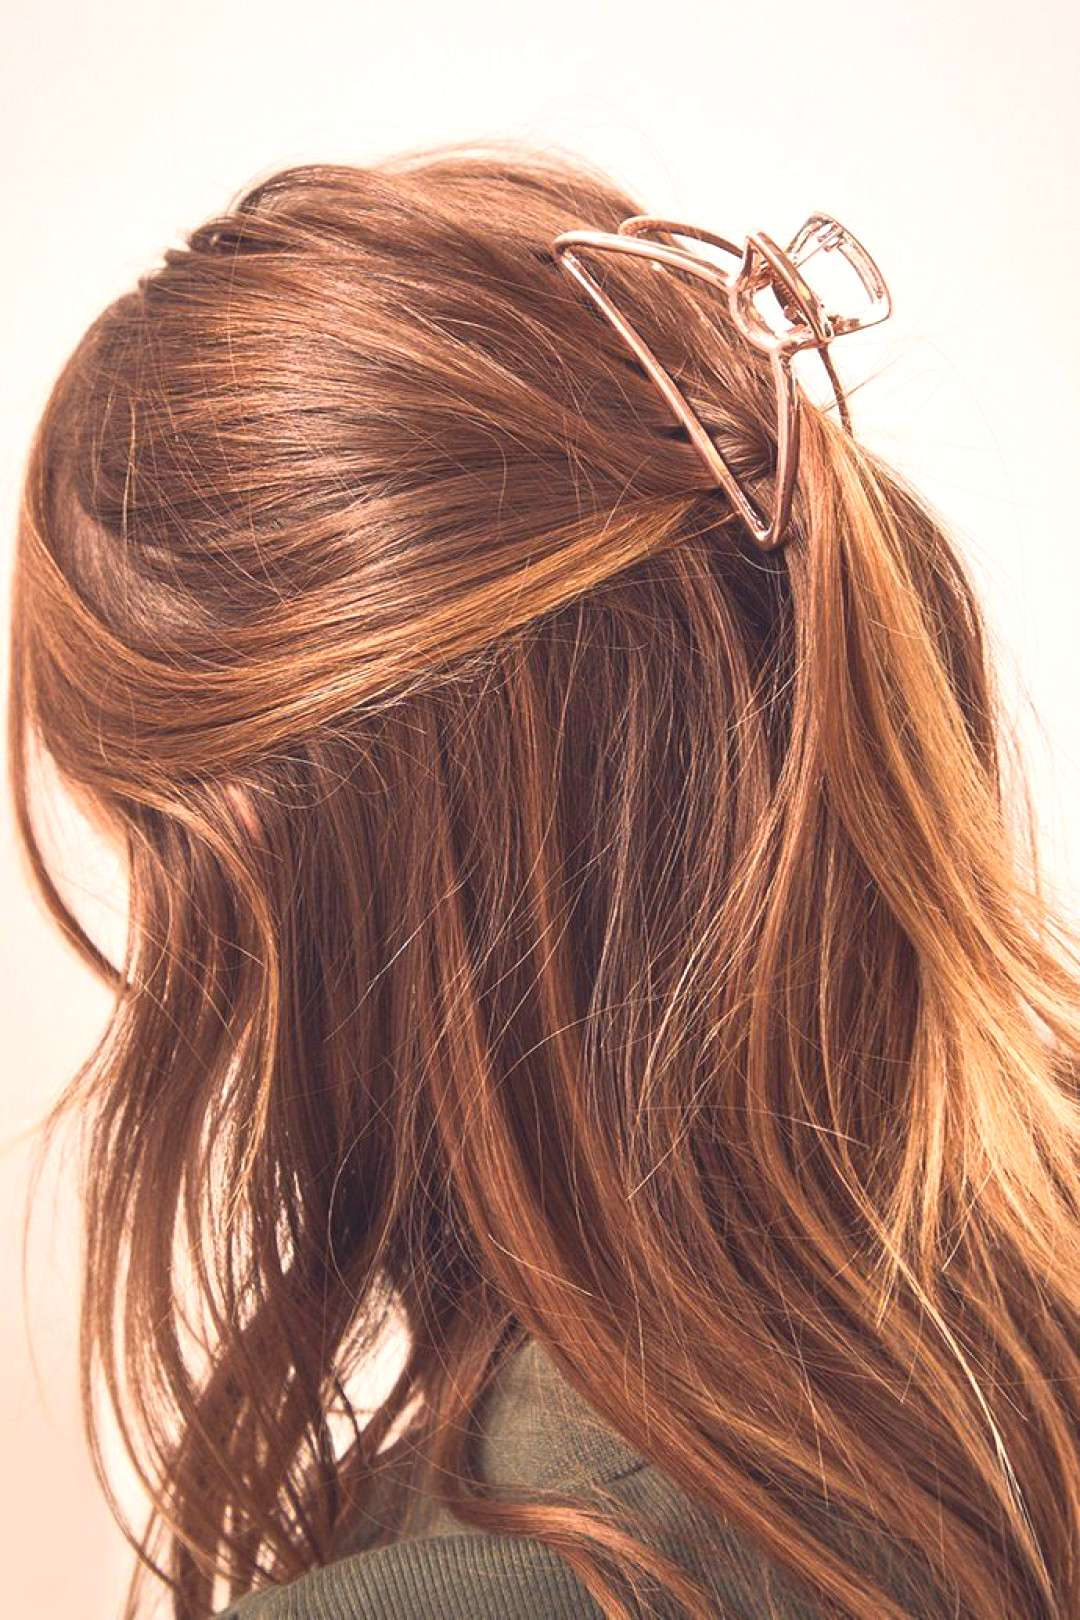 LA Hearts Metal Claw Hair Clip   PacSun - BACK TO SCHOOL HAIRSTYLES